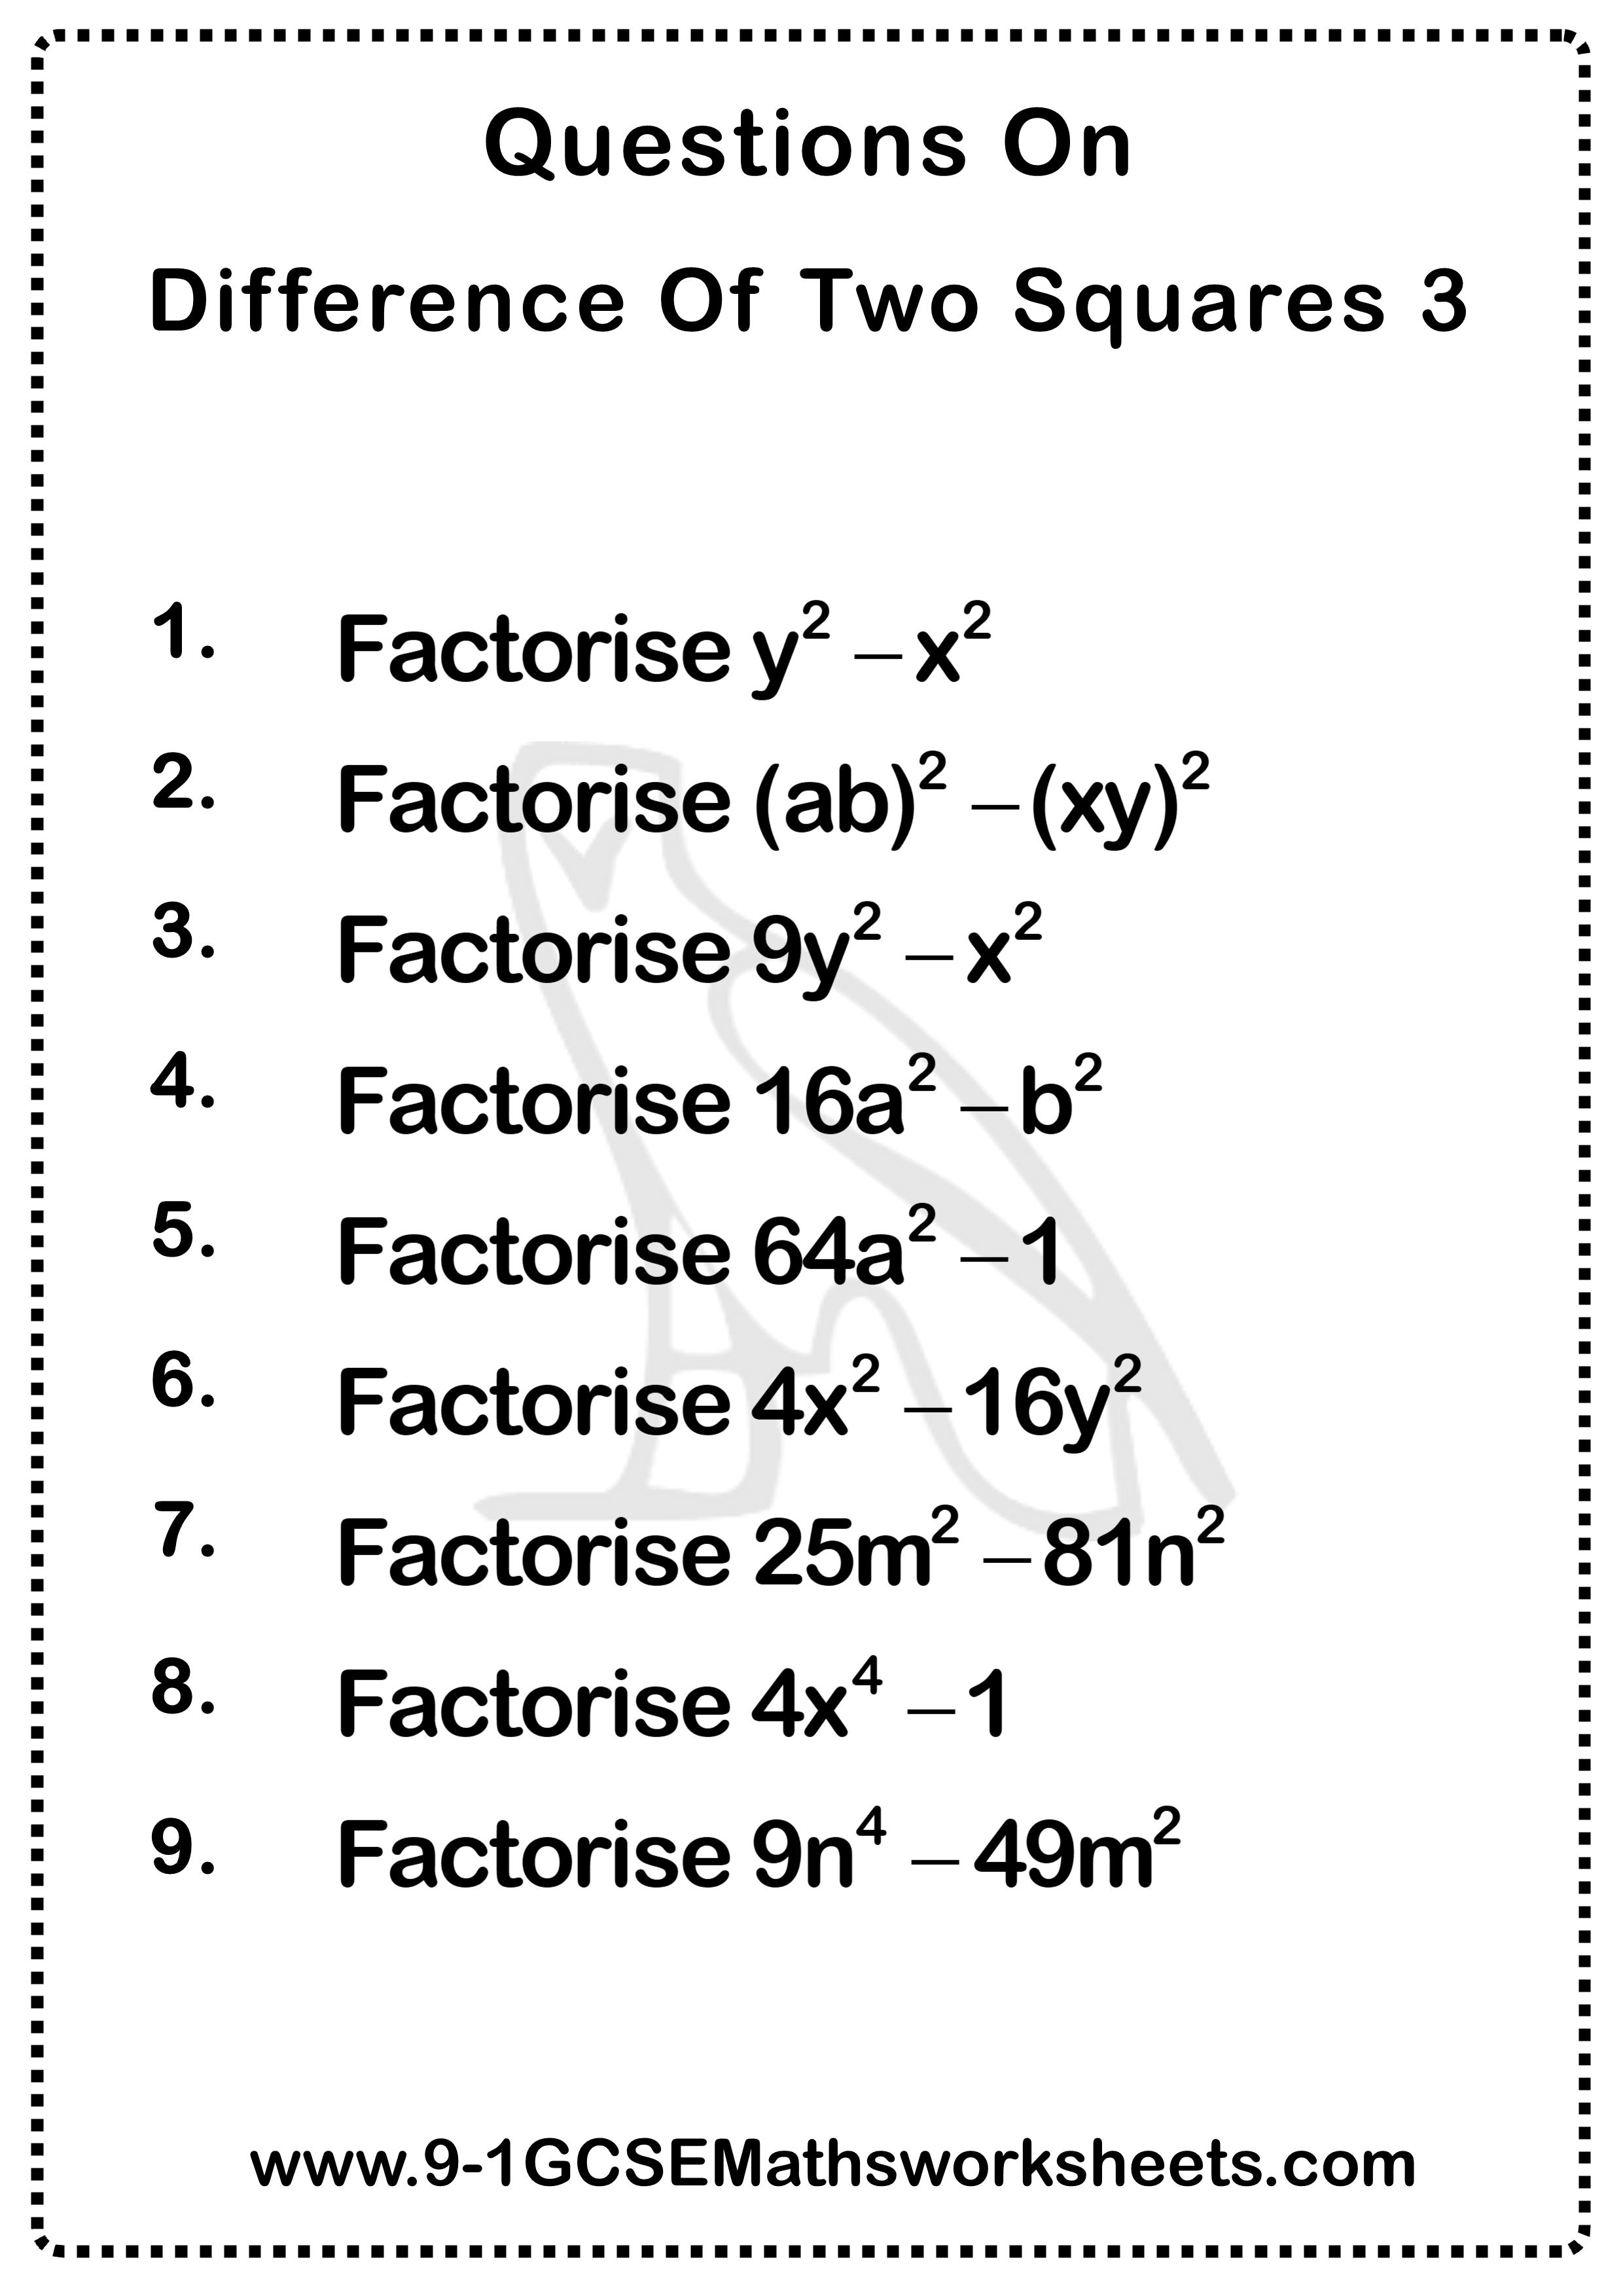 Difference Of Two Squares Worksheets